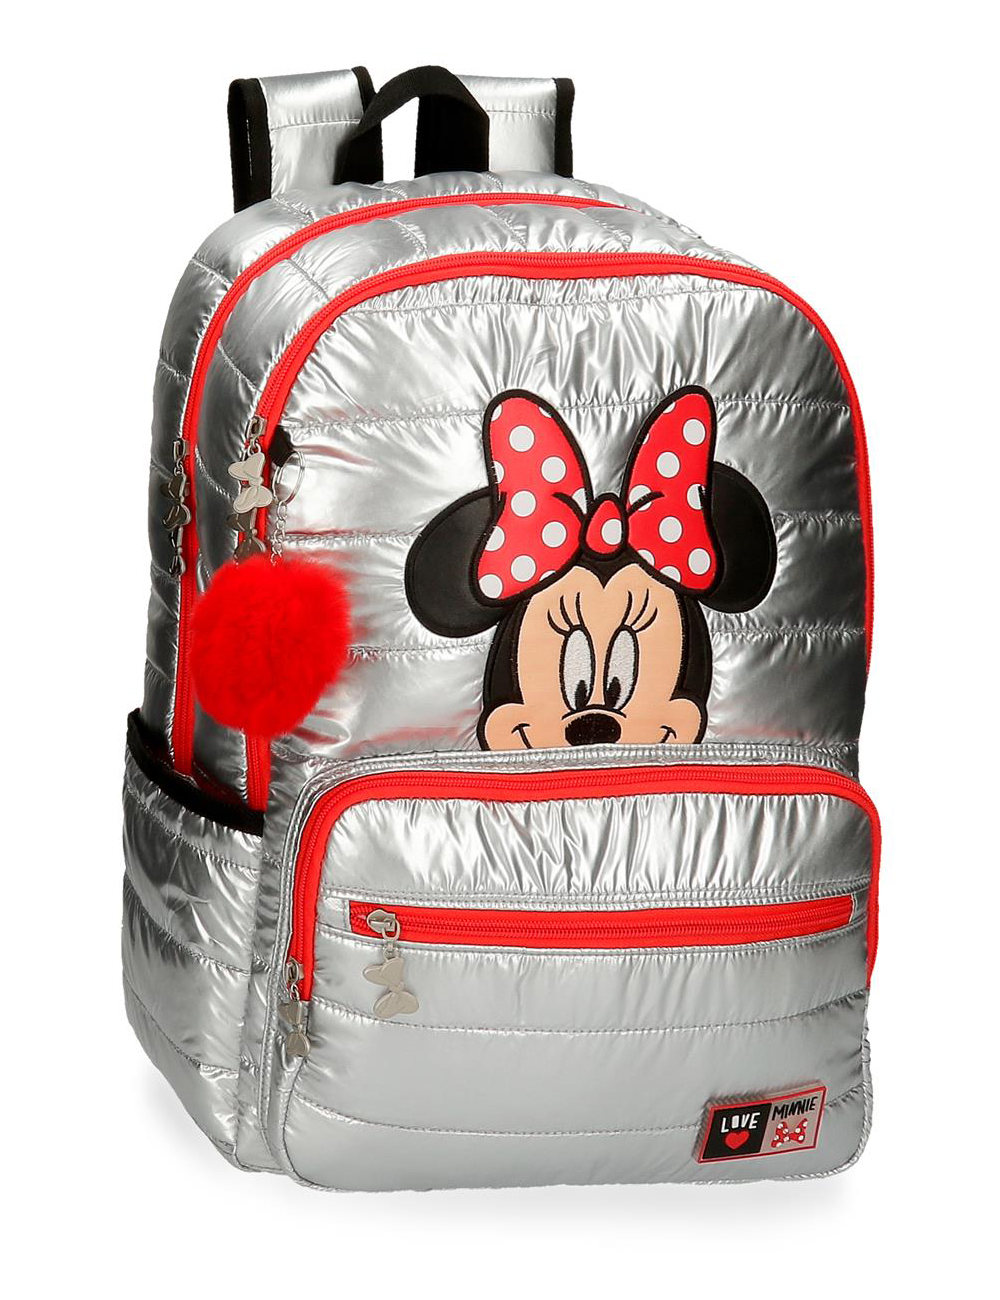 2162421 Mochila 44cm Doble Minnie My Pretty Bow